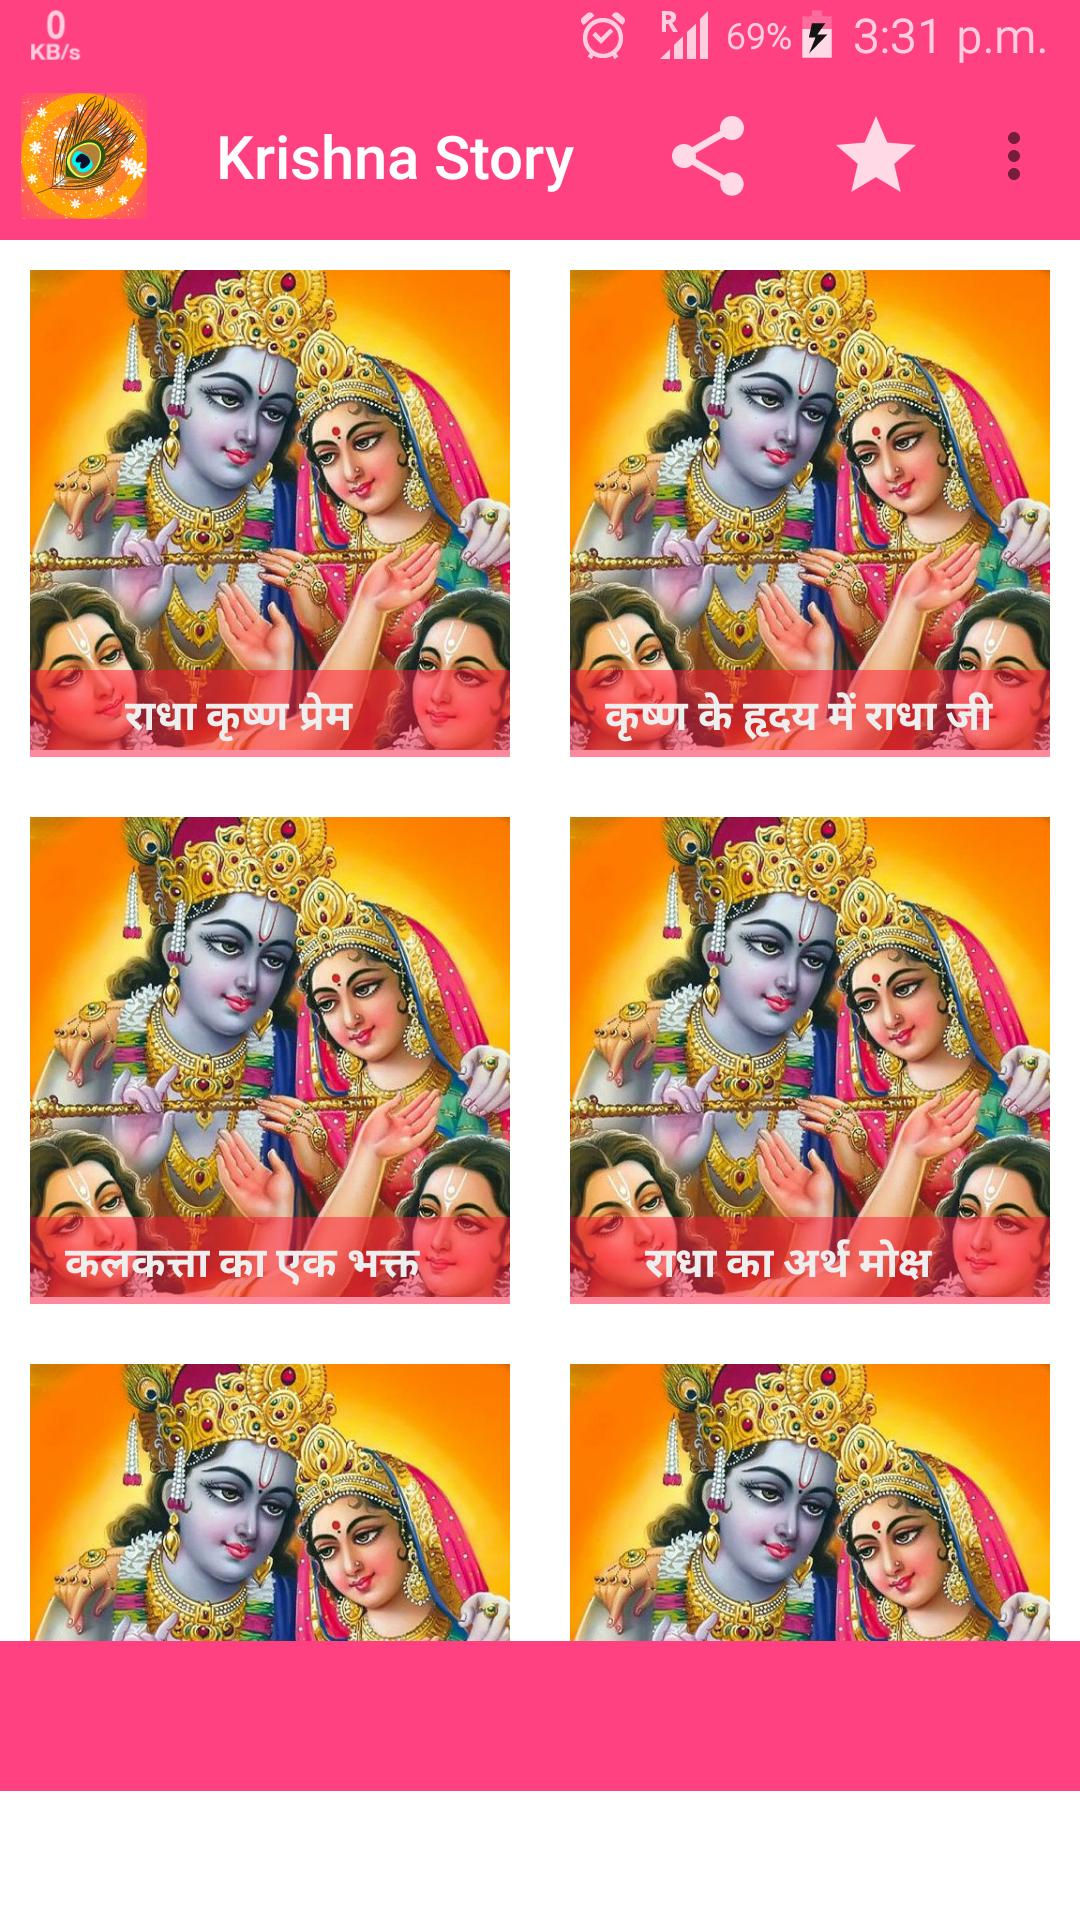 Radhe Krishna Story for Android - APK Download